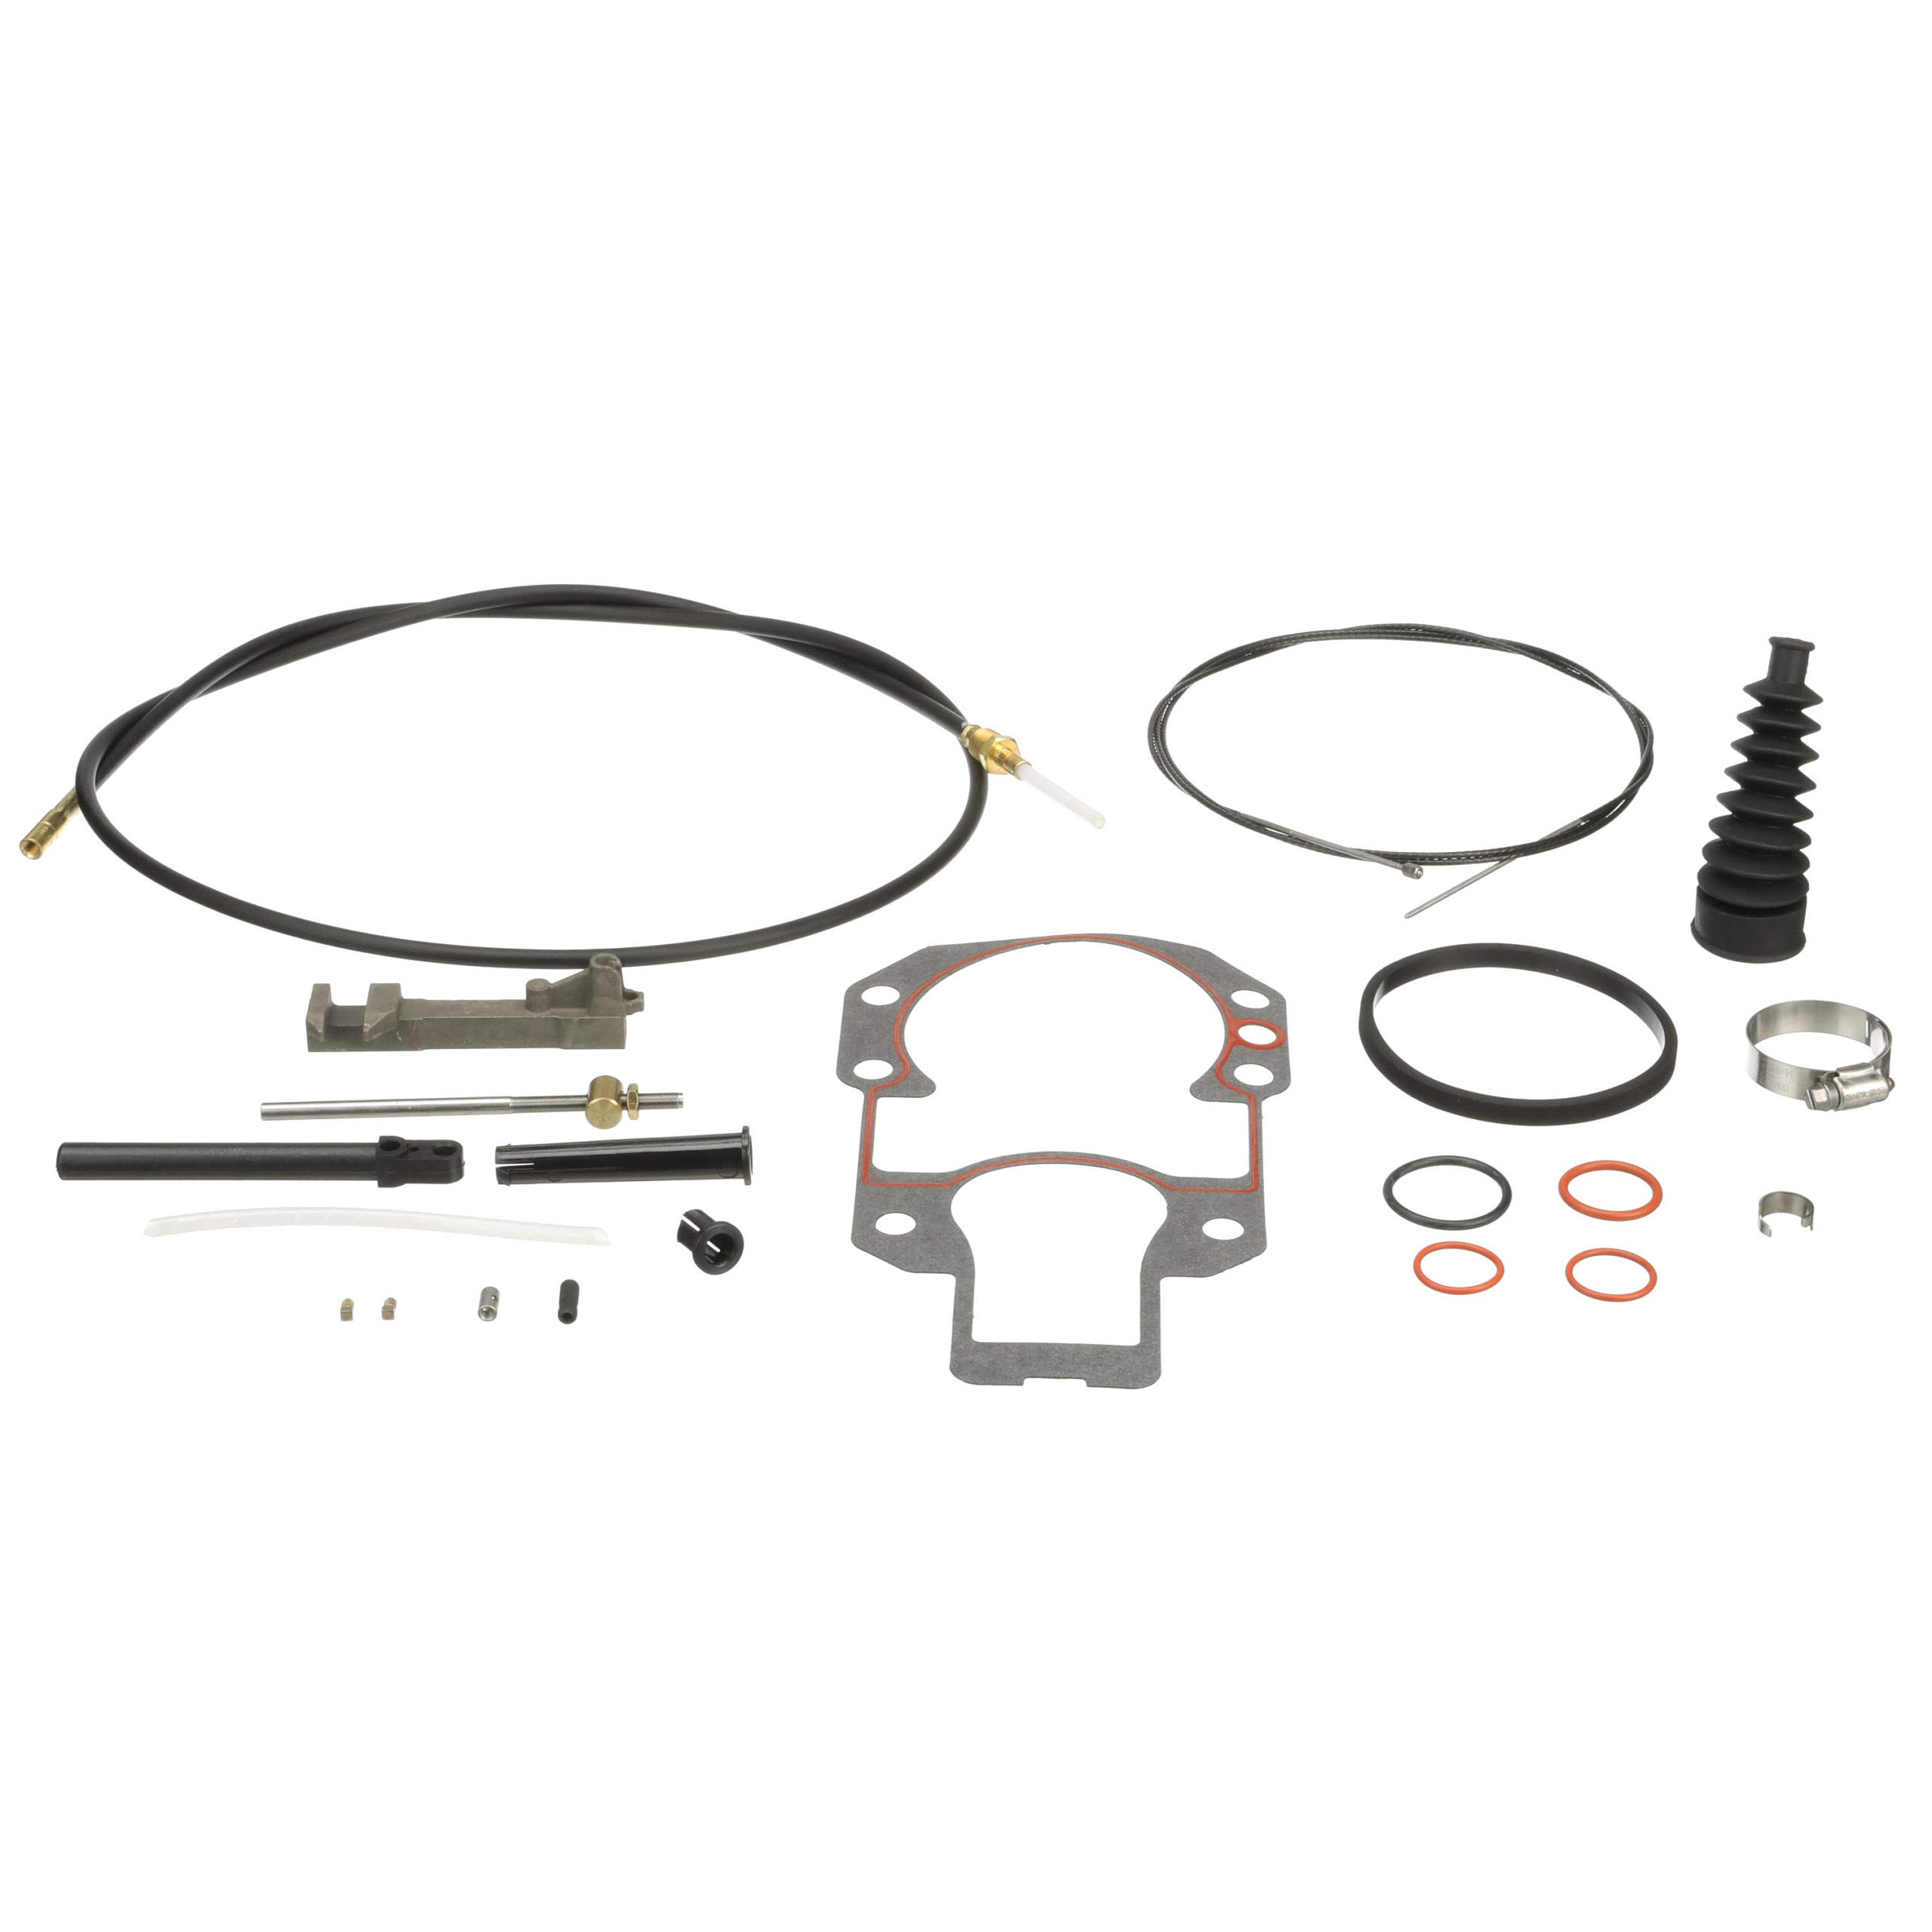 Quicksilver Lower Shift Cable Kit 865436A03 - for MerCruiser Stern Drives MC-I, R, MR, Alpha One and Alpha One Gen II by QuickSilver